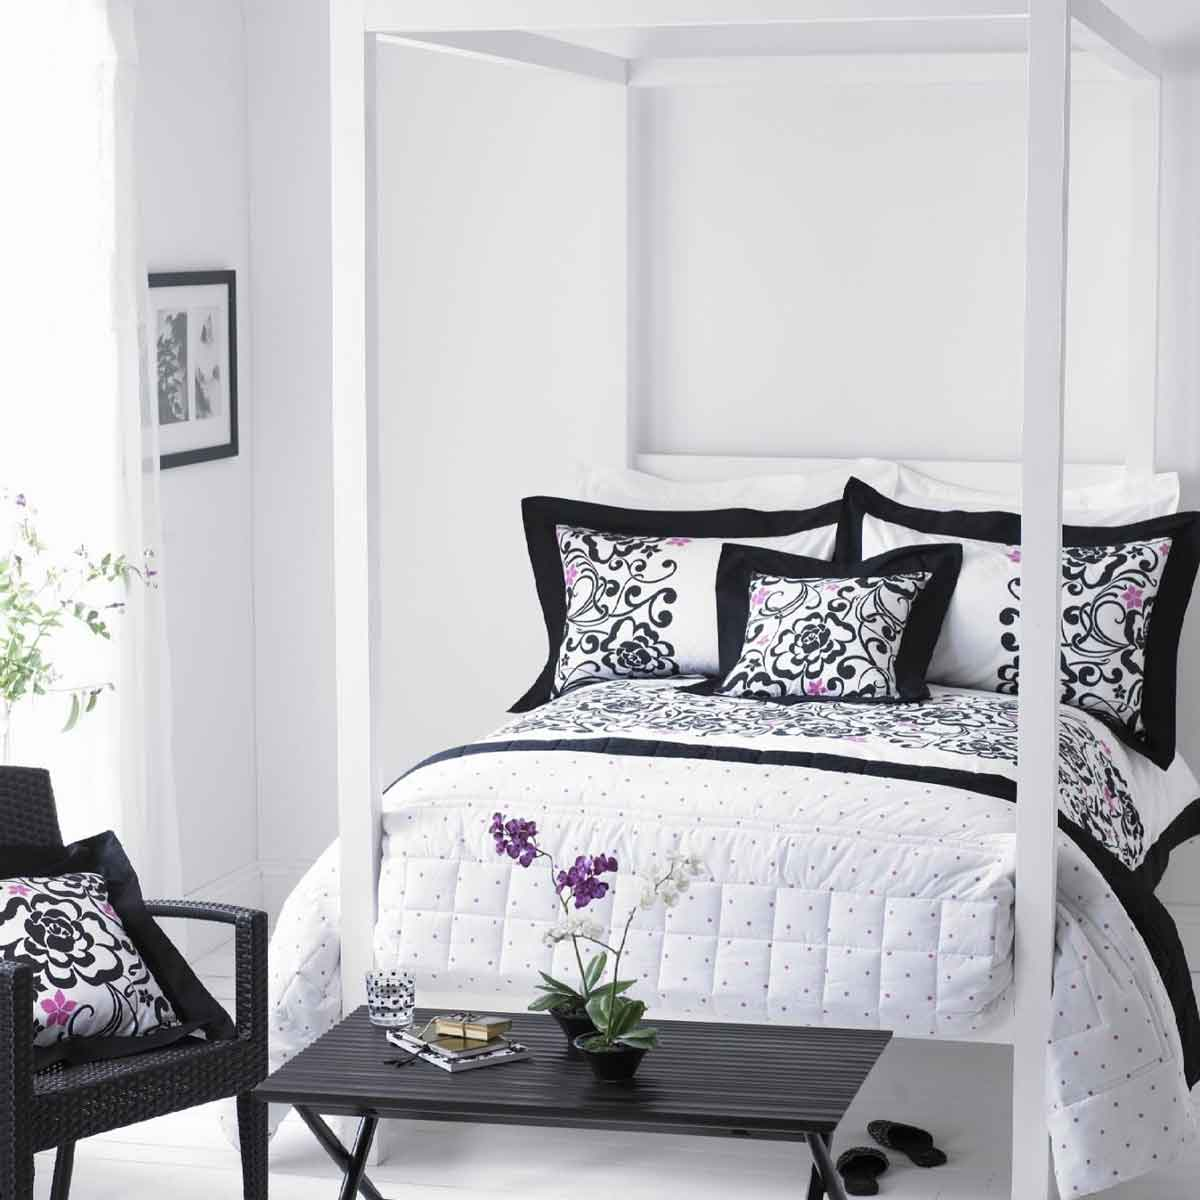 black and white bedroom decorating ideas dream house experience. Black Bedroom Furniture Sets. Home Design Ideas